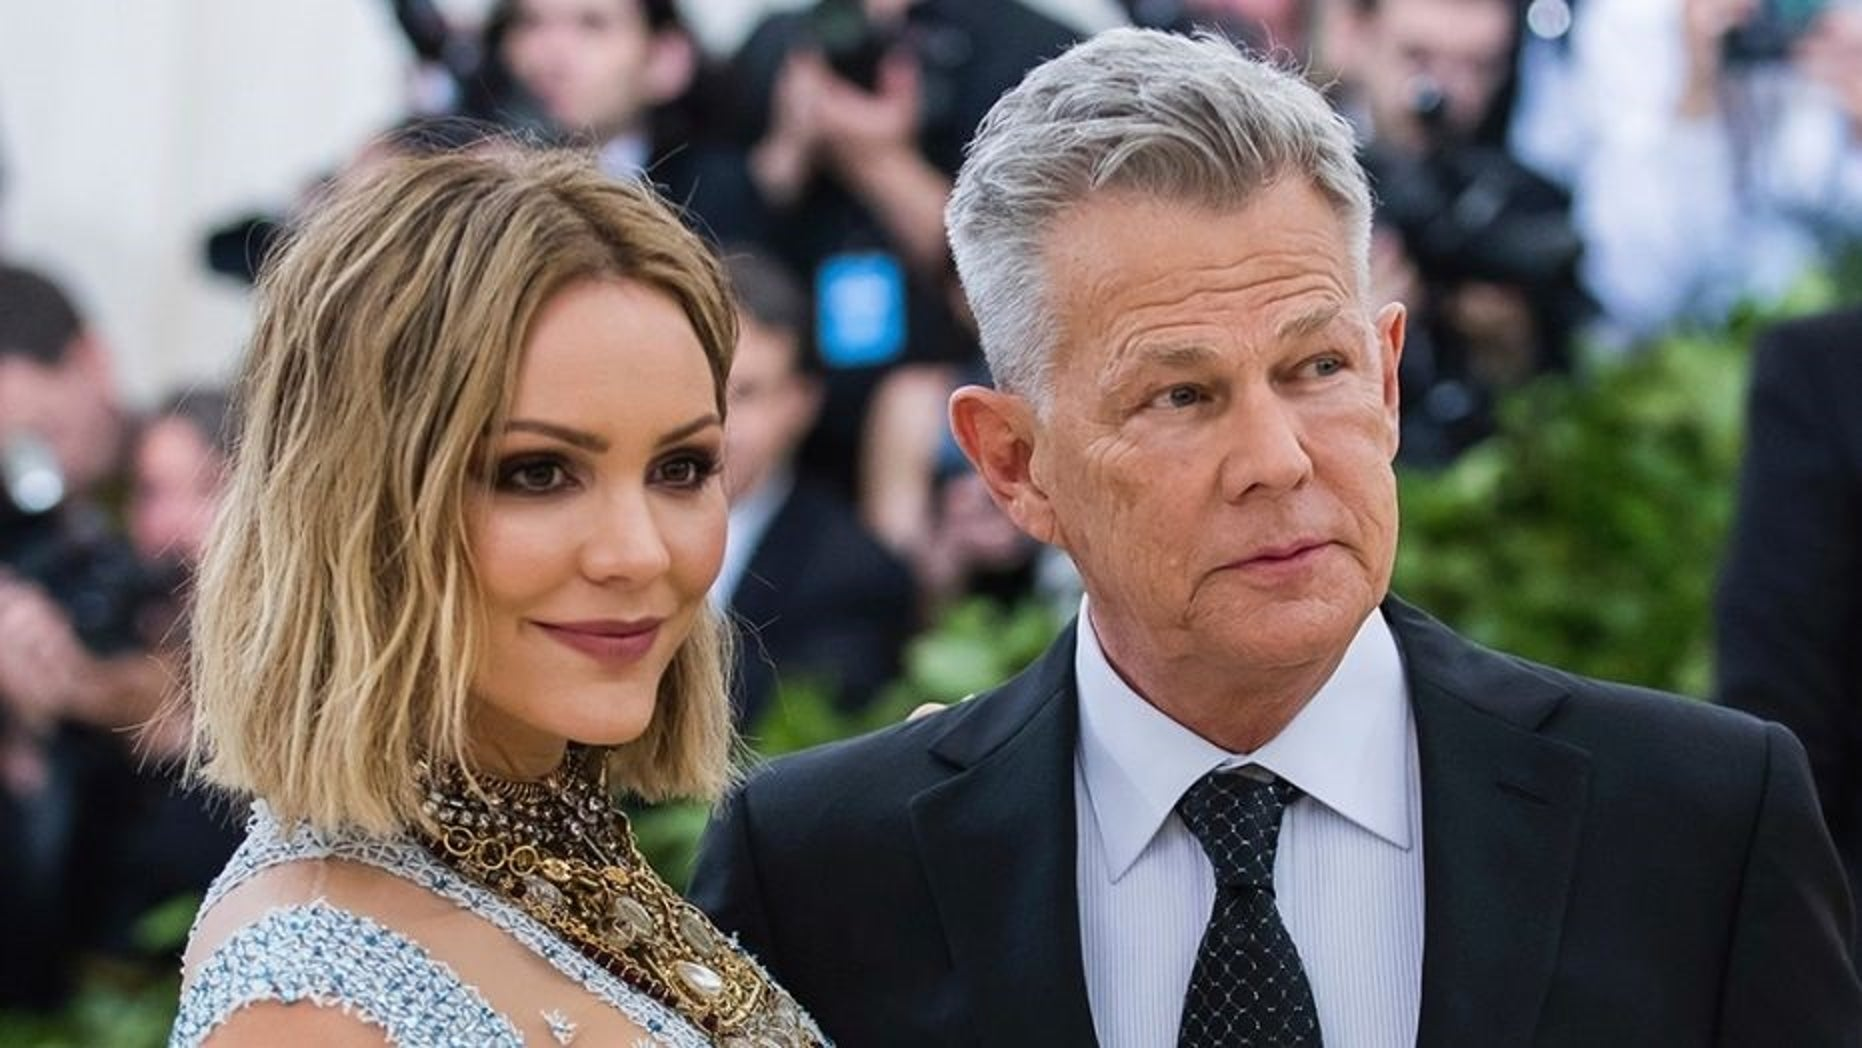 Katharine McPhee had a message for the haters criticizing her engagement to David Foster.